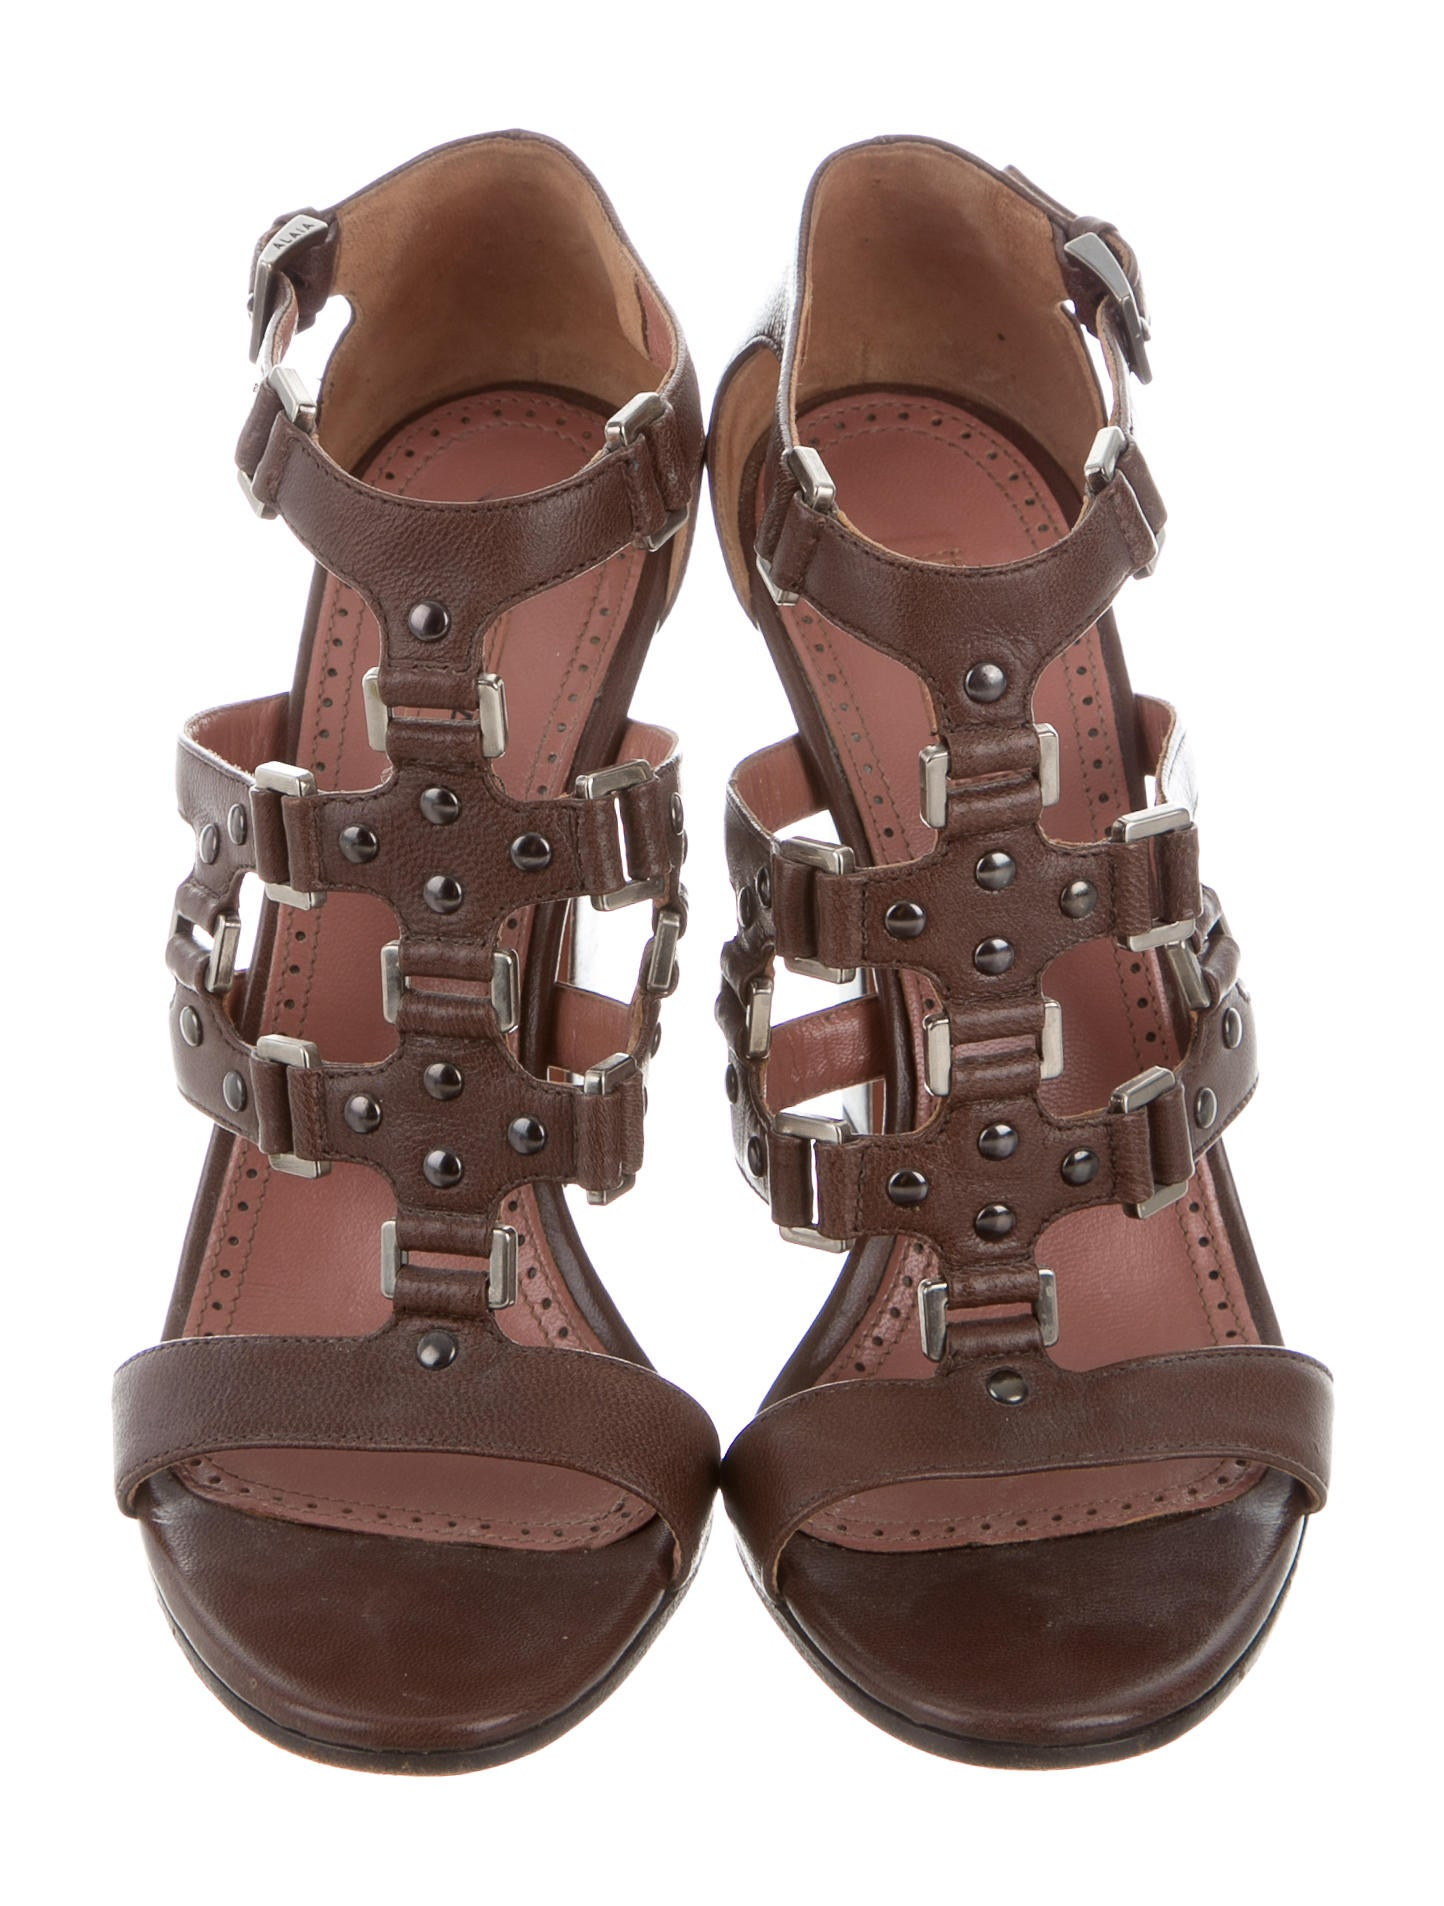 Womens Leather Born Sandals ~ Leather Sandals